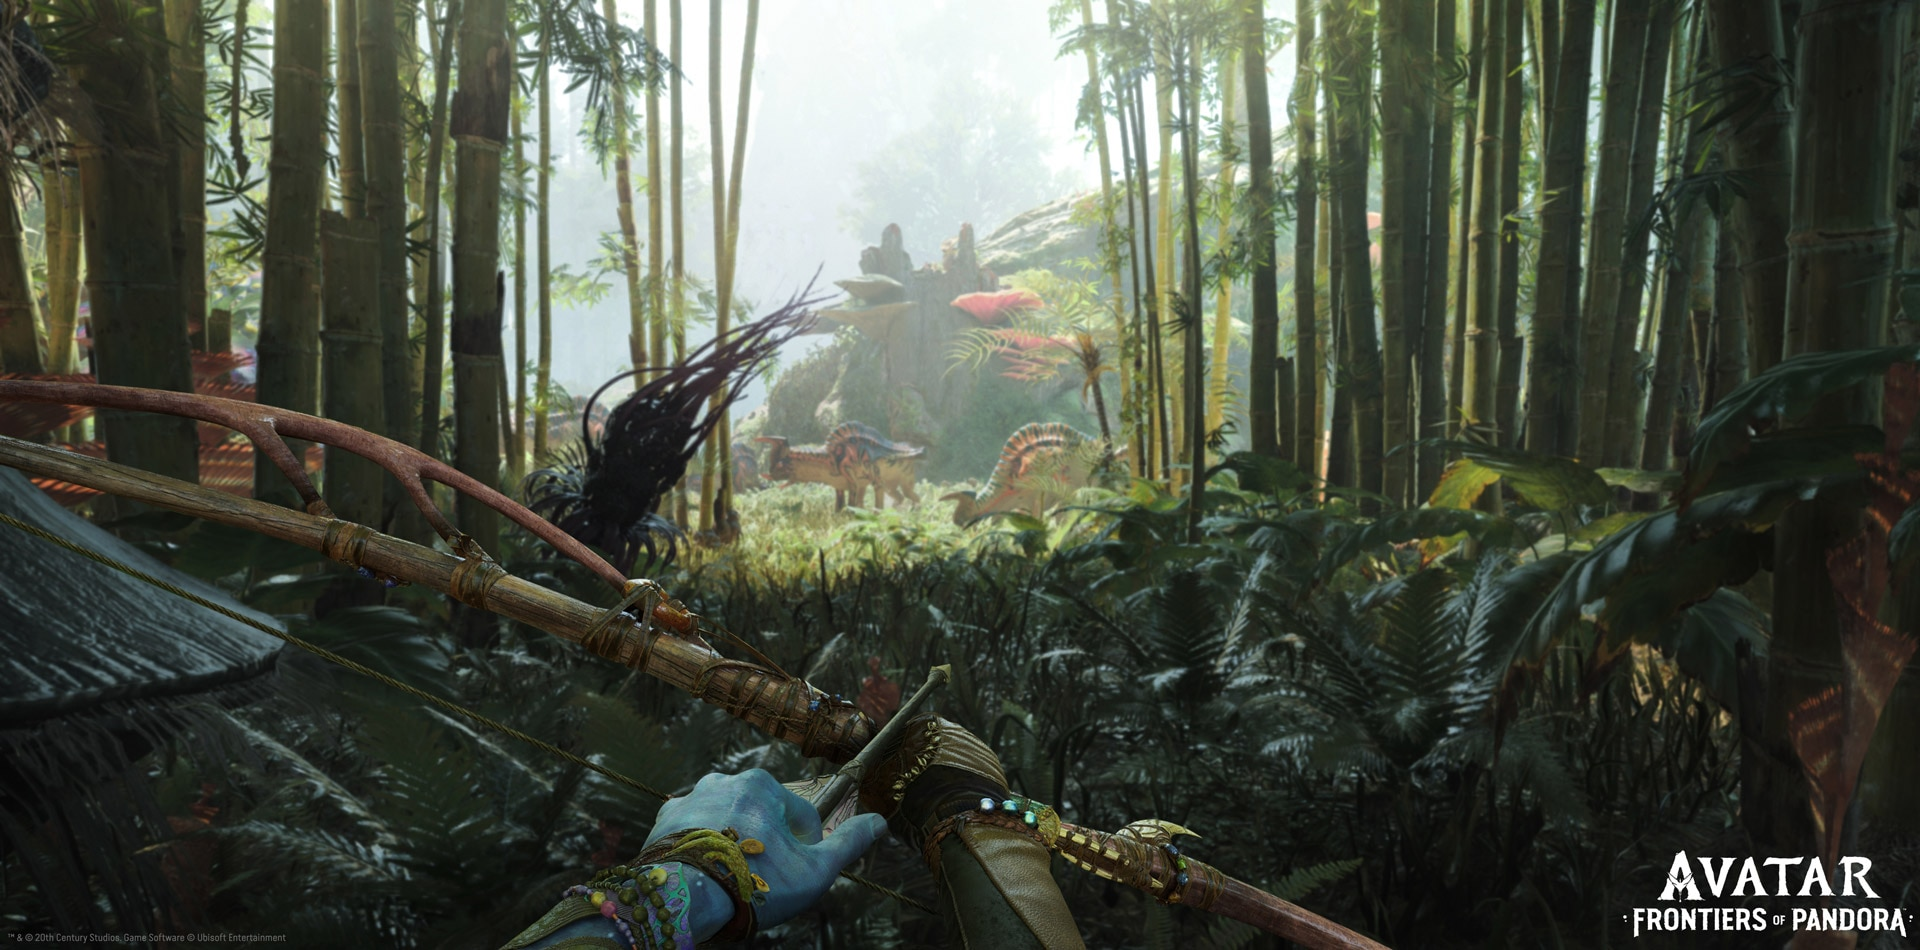 'It's Not Just the Tech, but the People' – How Avatar: Frontiers of Pandora Embraces Creativity While Pushing Boundaries of Technology - Image 3